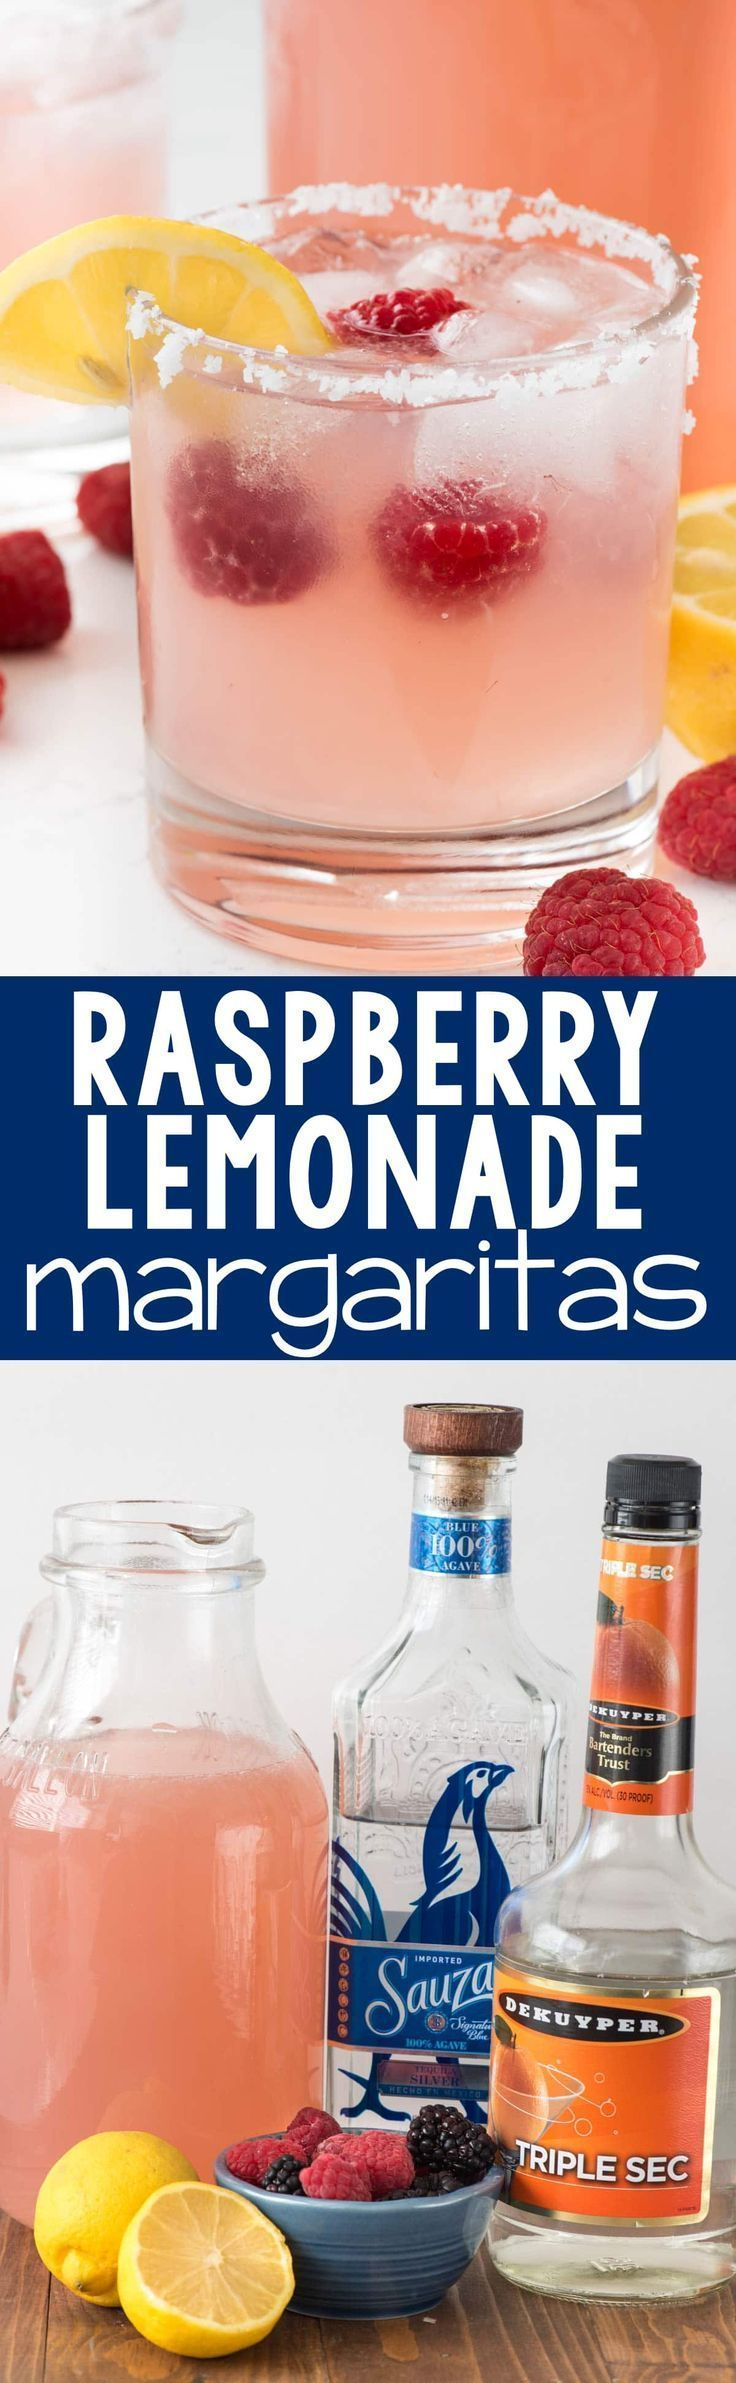 Raspberry Lemonade Margarita - this EASY cocktail recipe is the perfect margarita! Raspberry Lemonade, tequila, and triple sec- that's all it takes to make a pitcher! #tequiladrinks